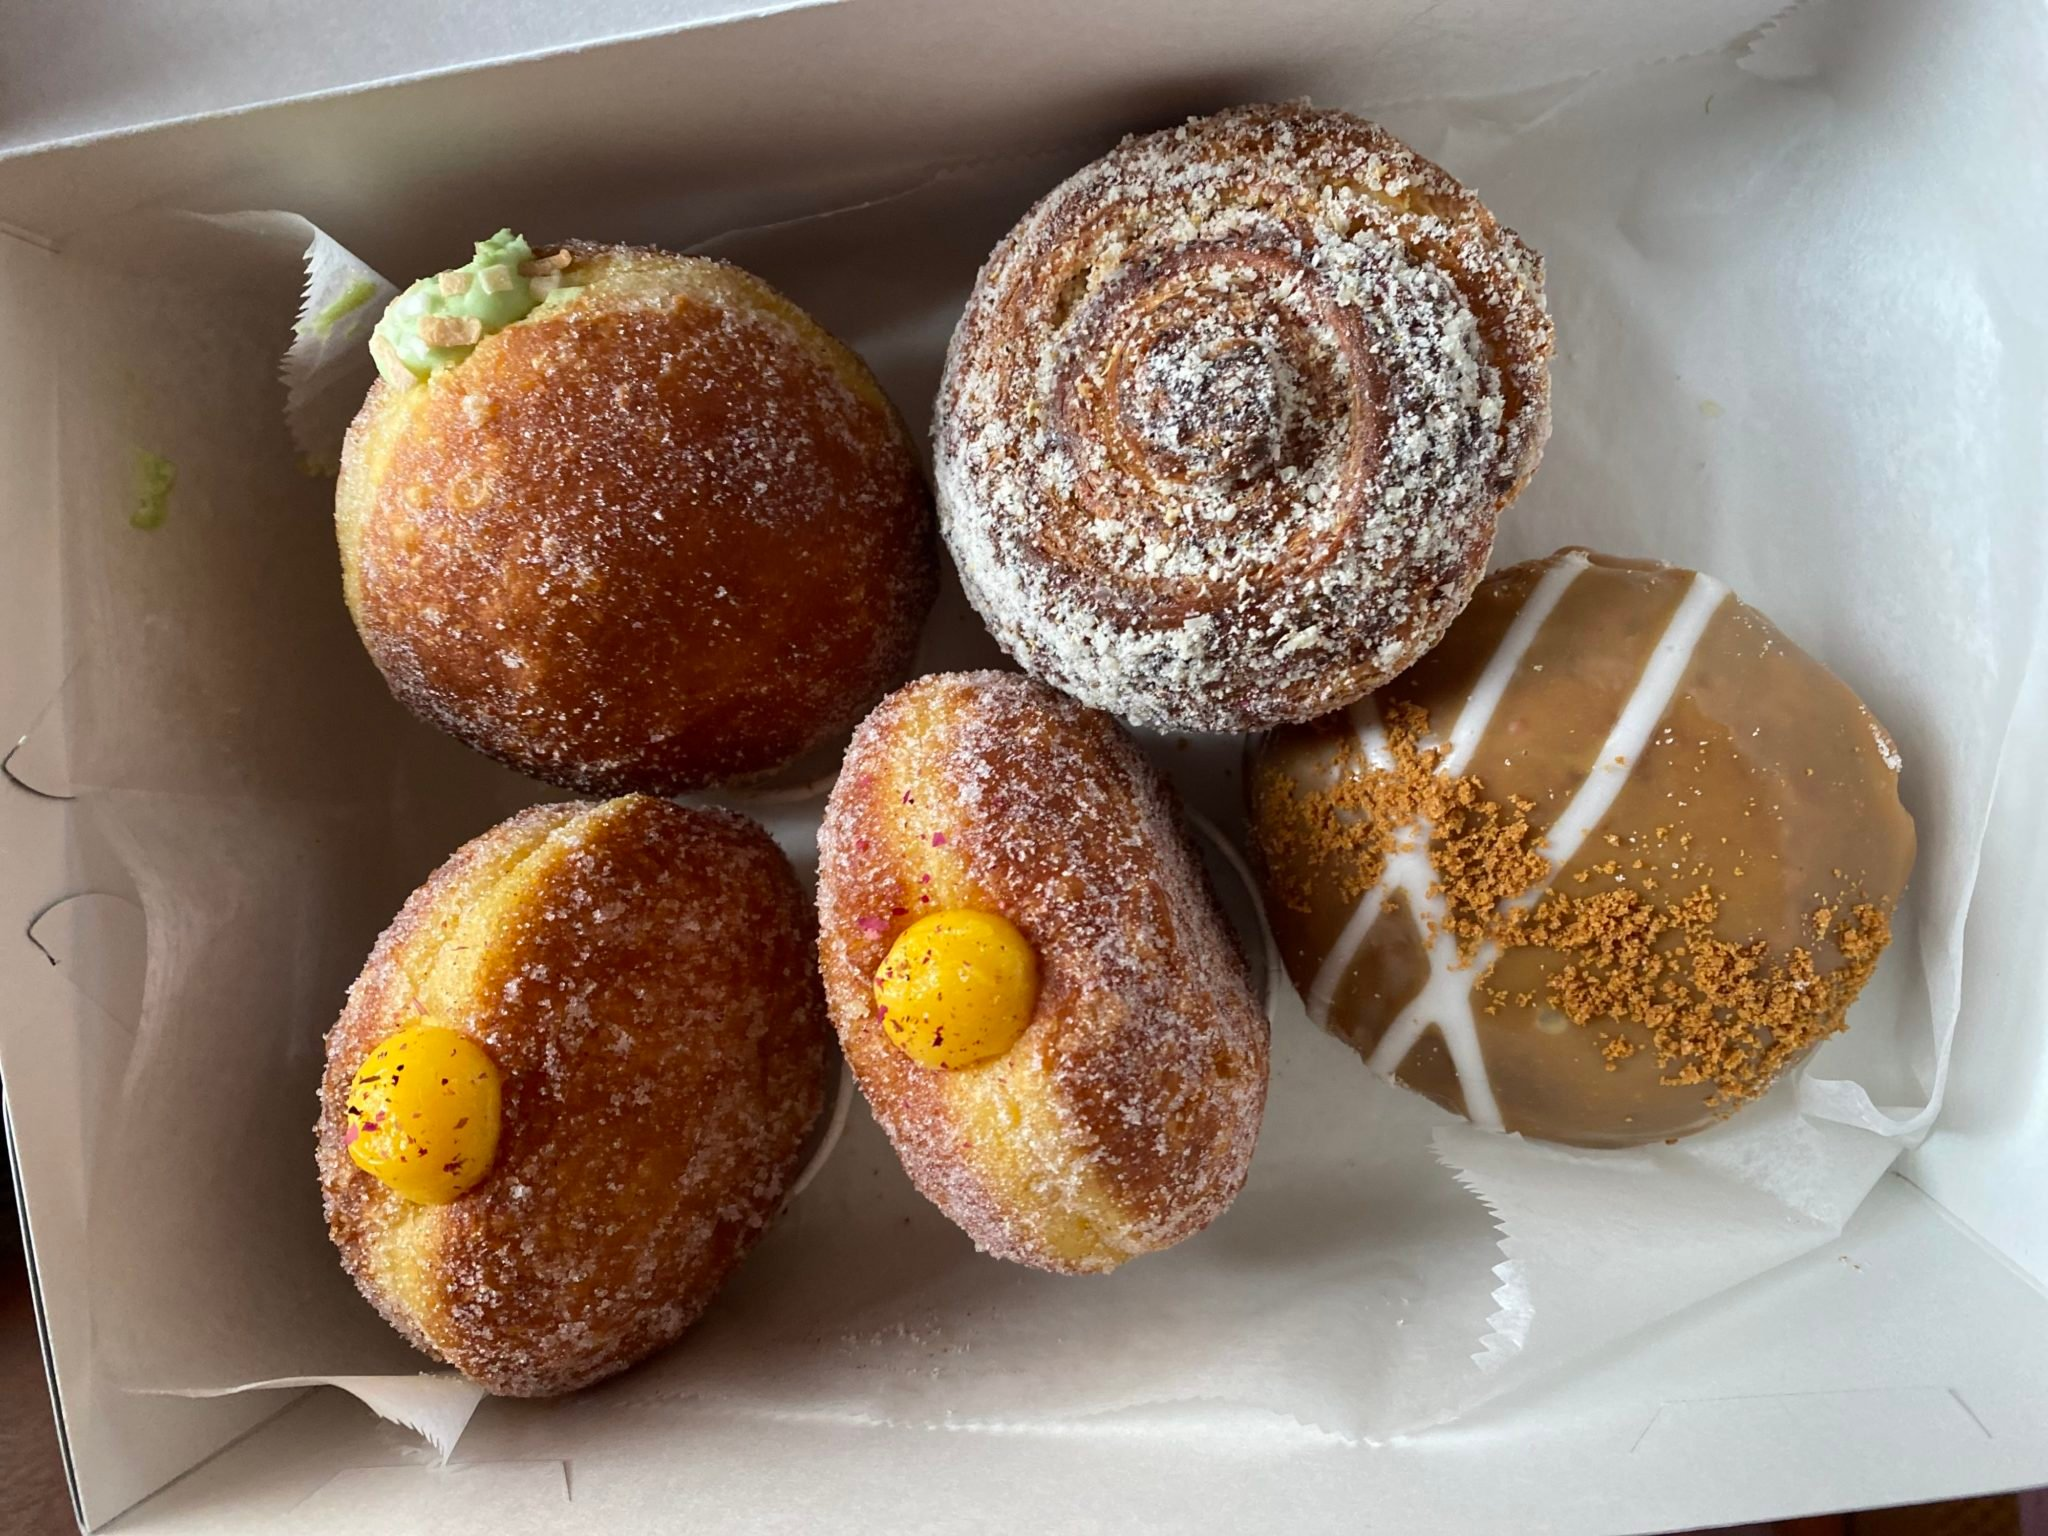 Assorted doughnuts and pastries from Rose Ave. Bakery. Photo by Sami Gruhin.